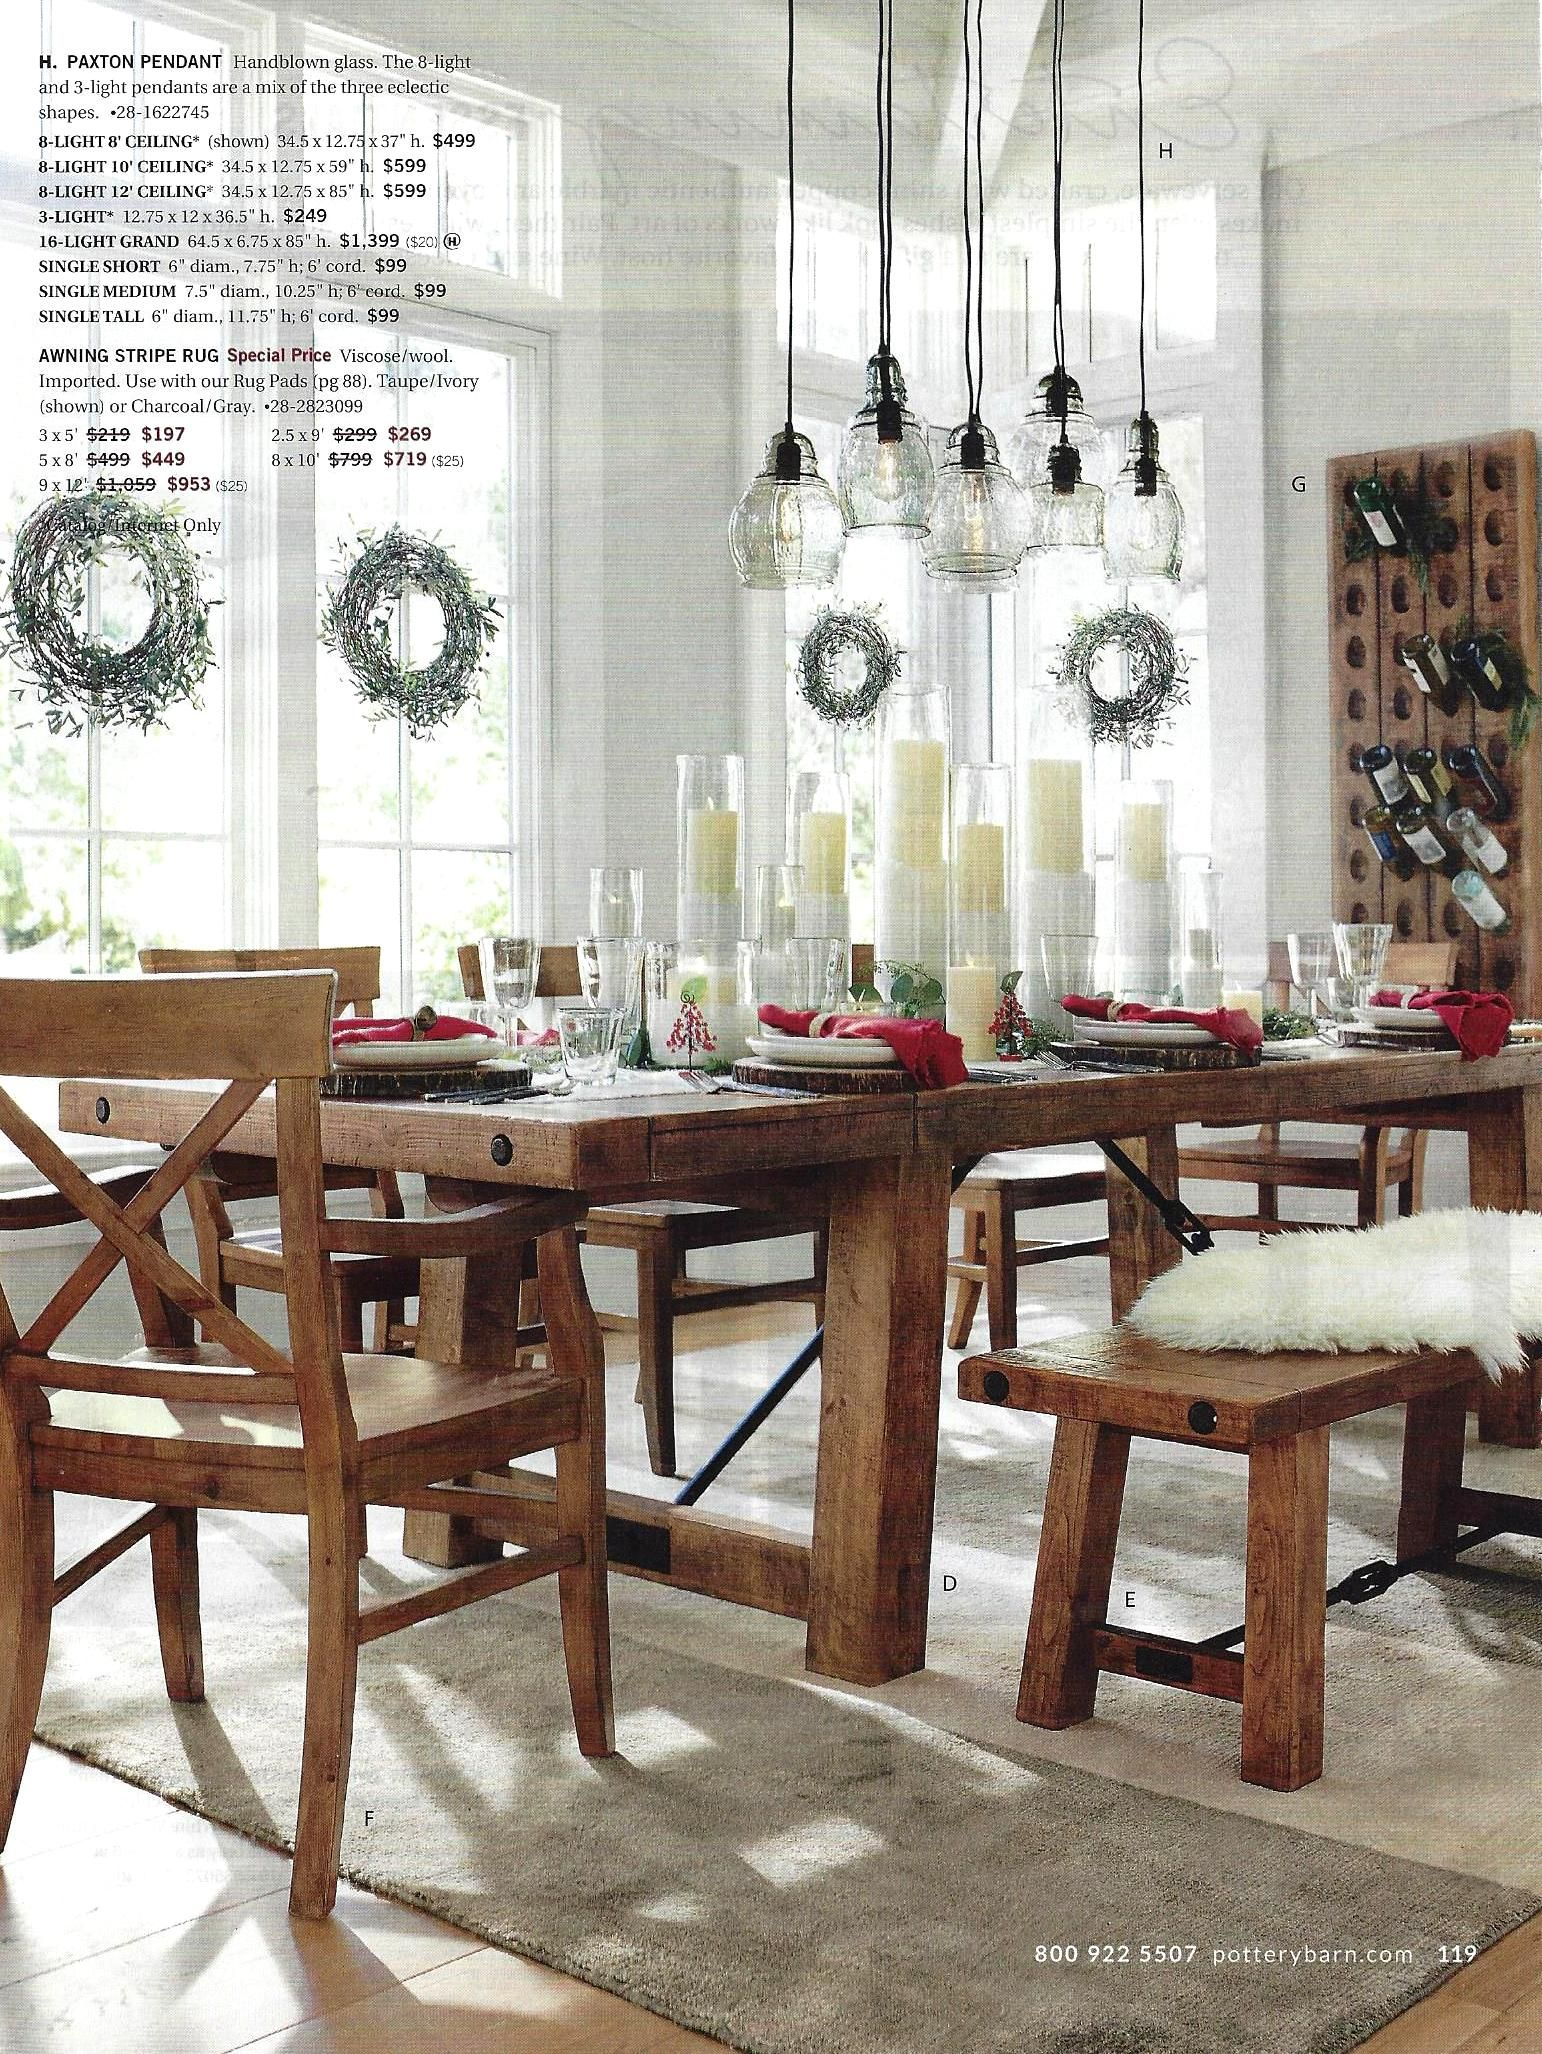 From Pottery Barn catalog, Christmas 2016. Wonderful